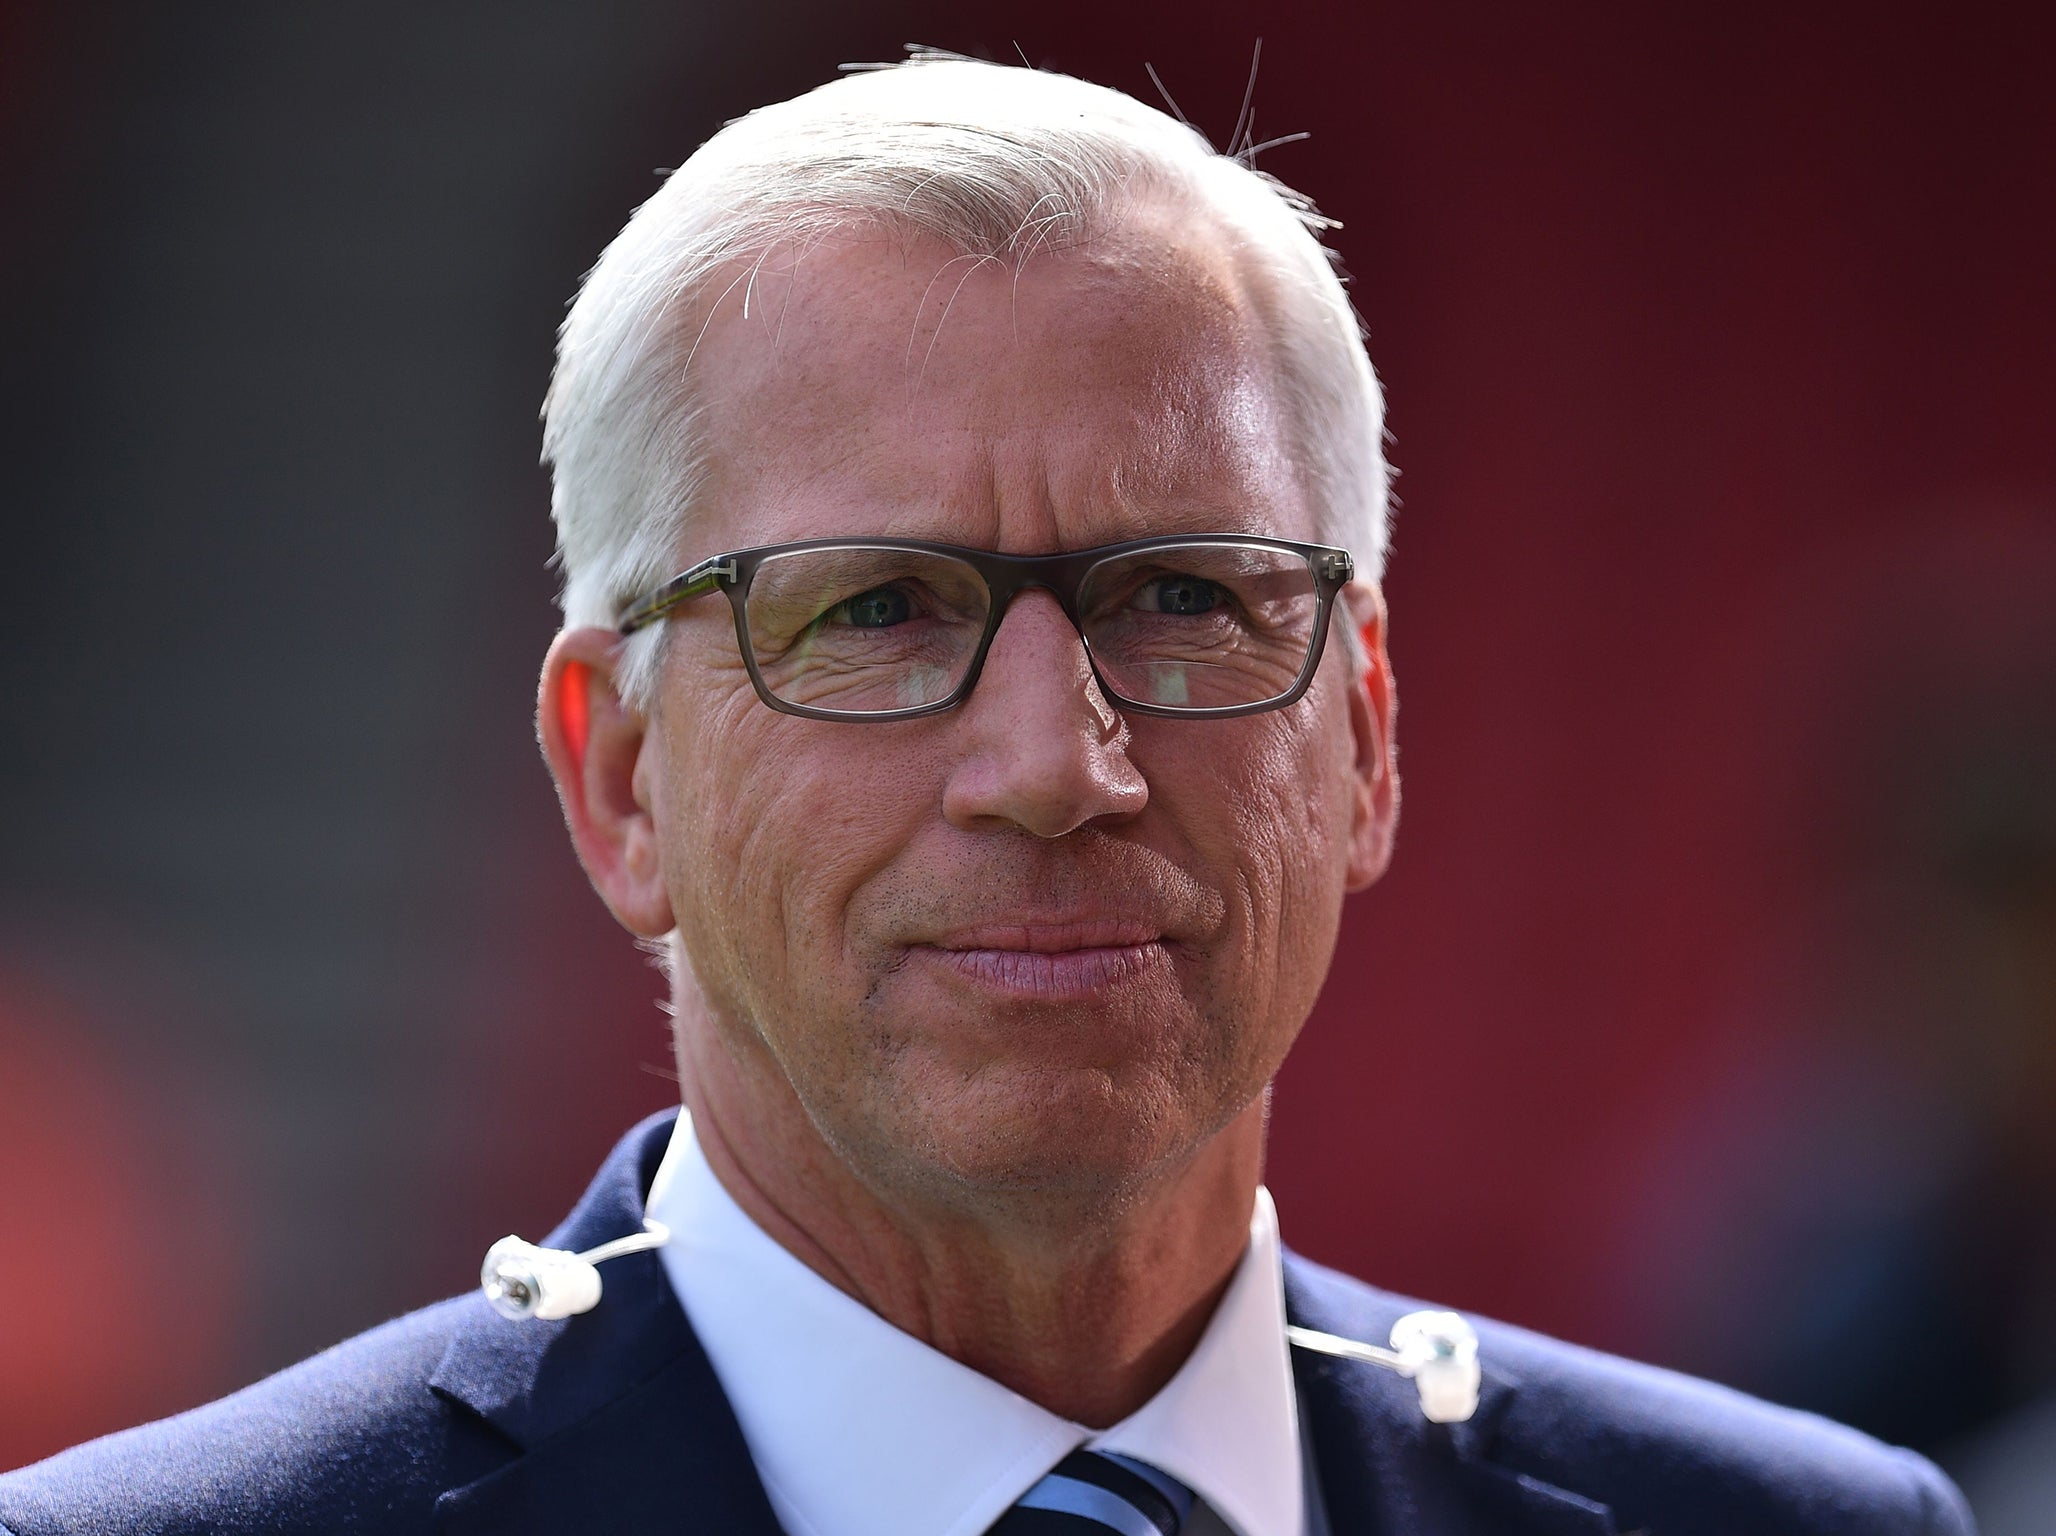 Alan Pardew confirms West Brom talks: 'I've had talks with them, obviously it is an attractive job'